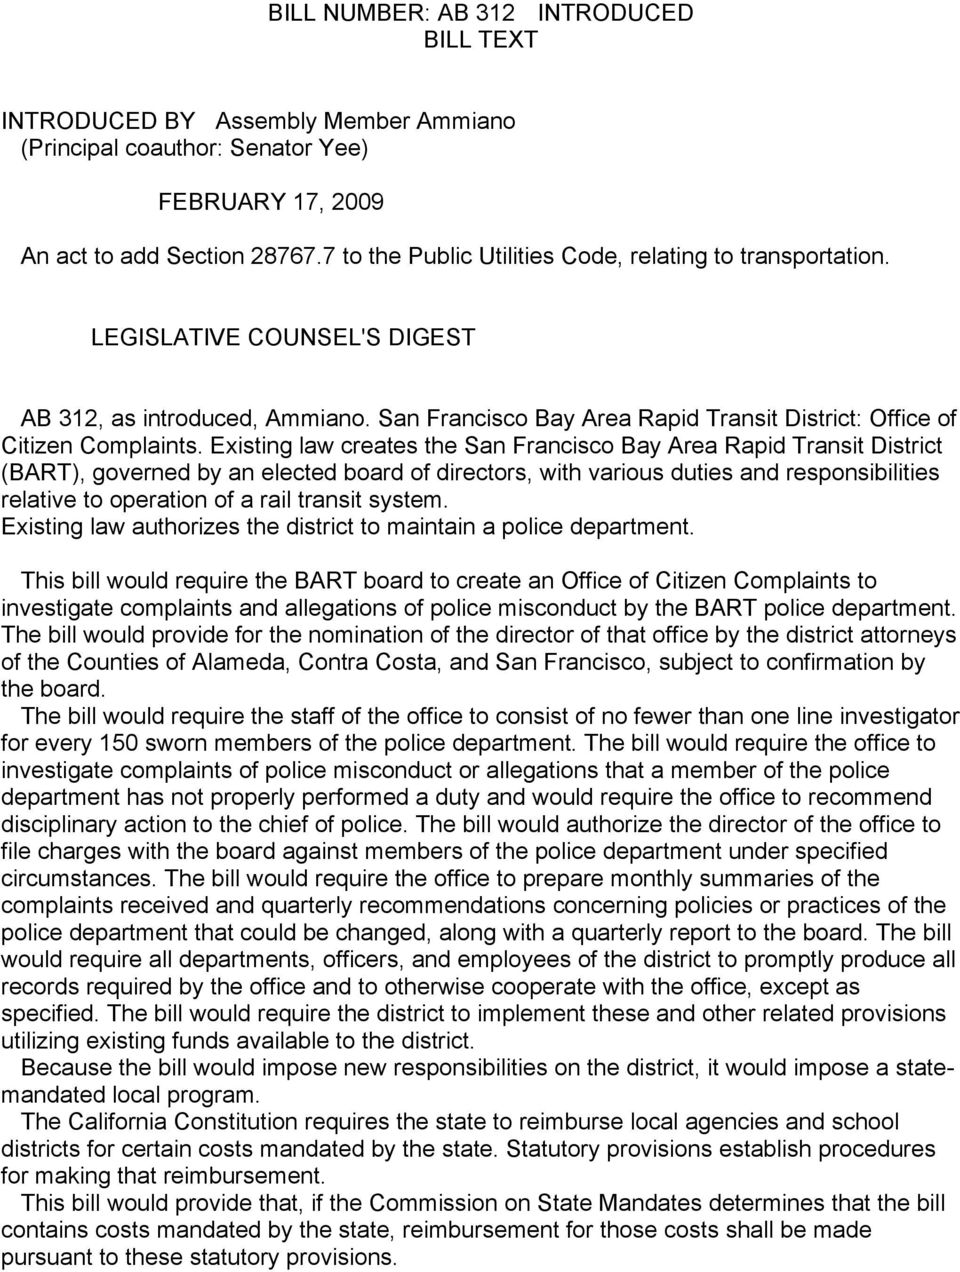 Existing law creates the San Francisco Bay Area Rapid Transit District (BART), governed by an elected board of directors, with various duties and responsibilities relative to operation of a rail